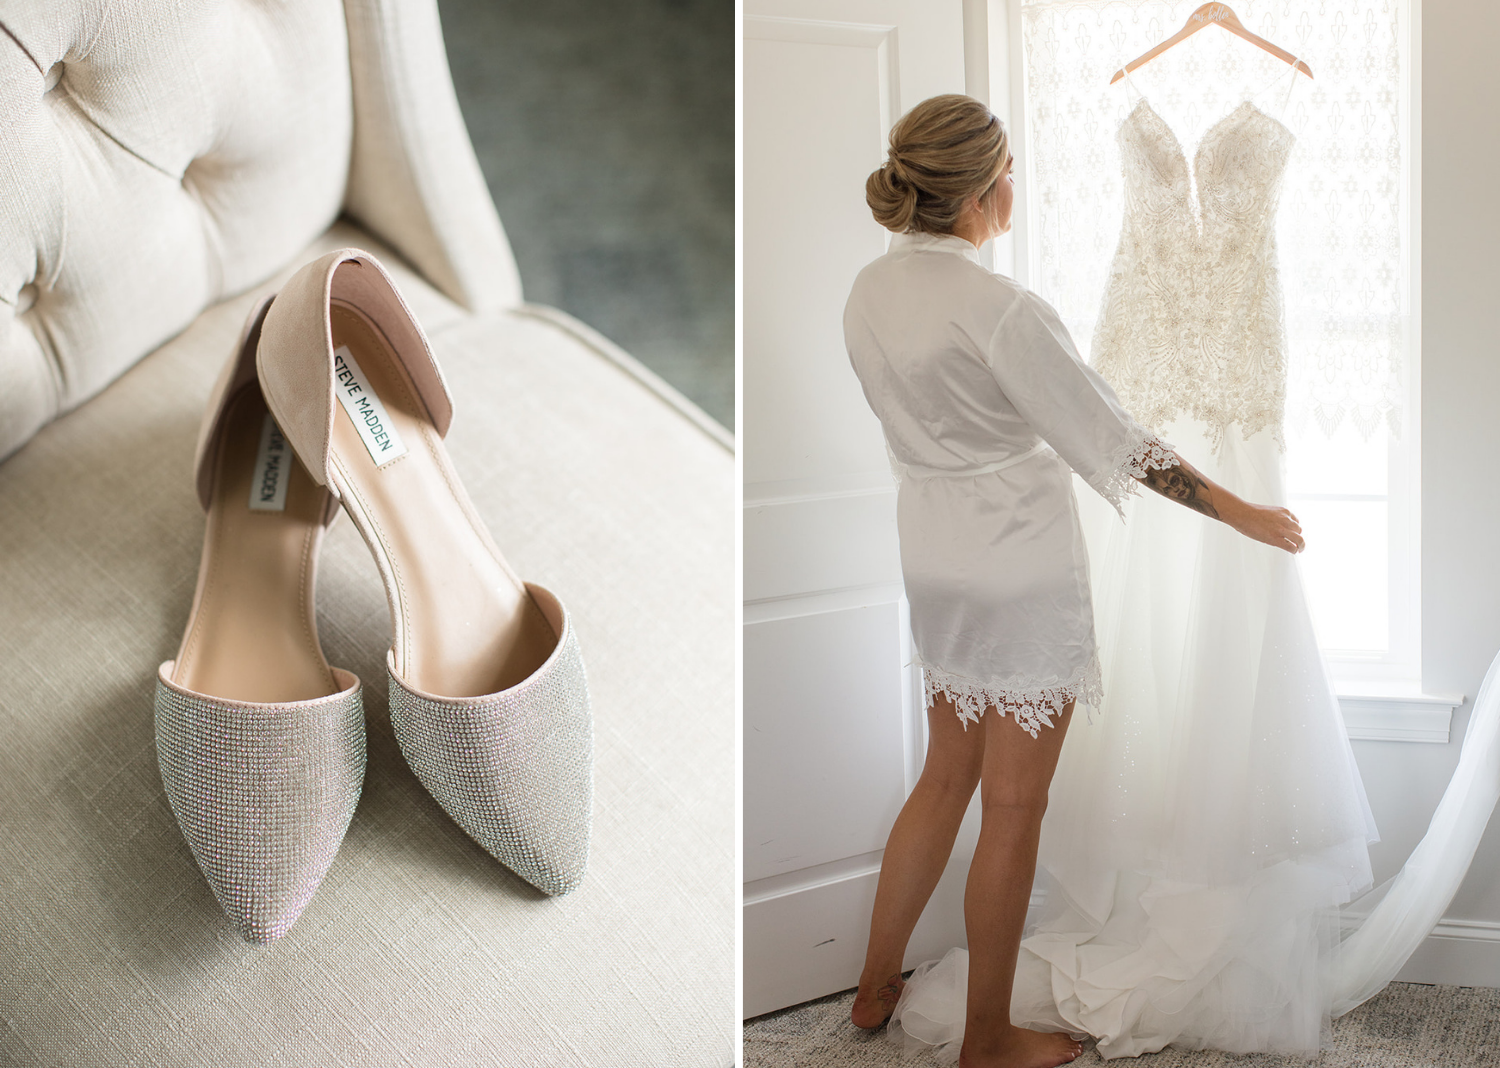 bridal shoes and wedding dress